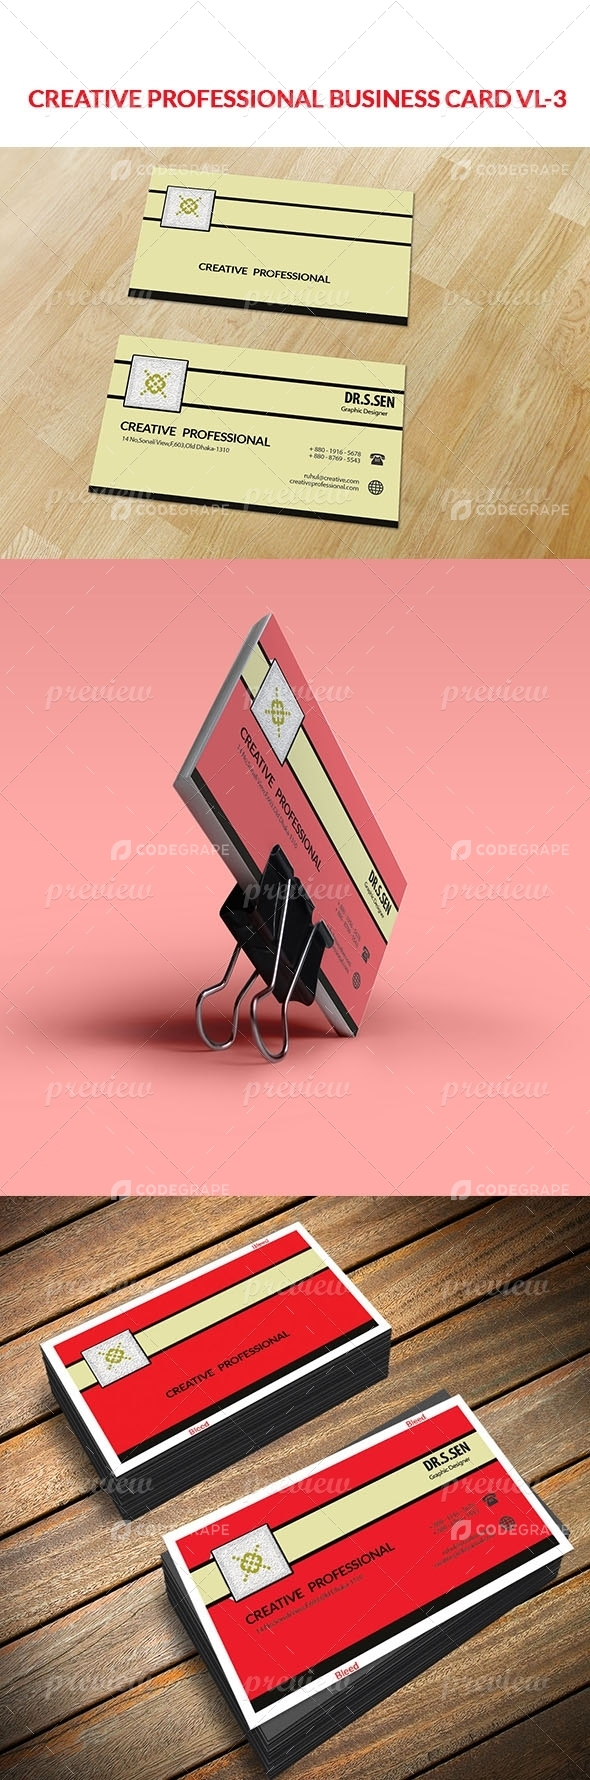 Creative Professional VL- 3 Business card